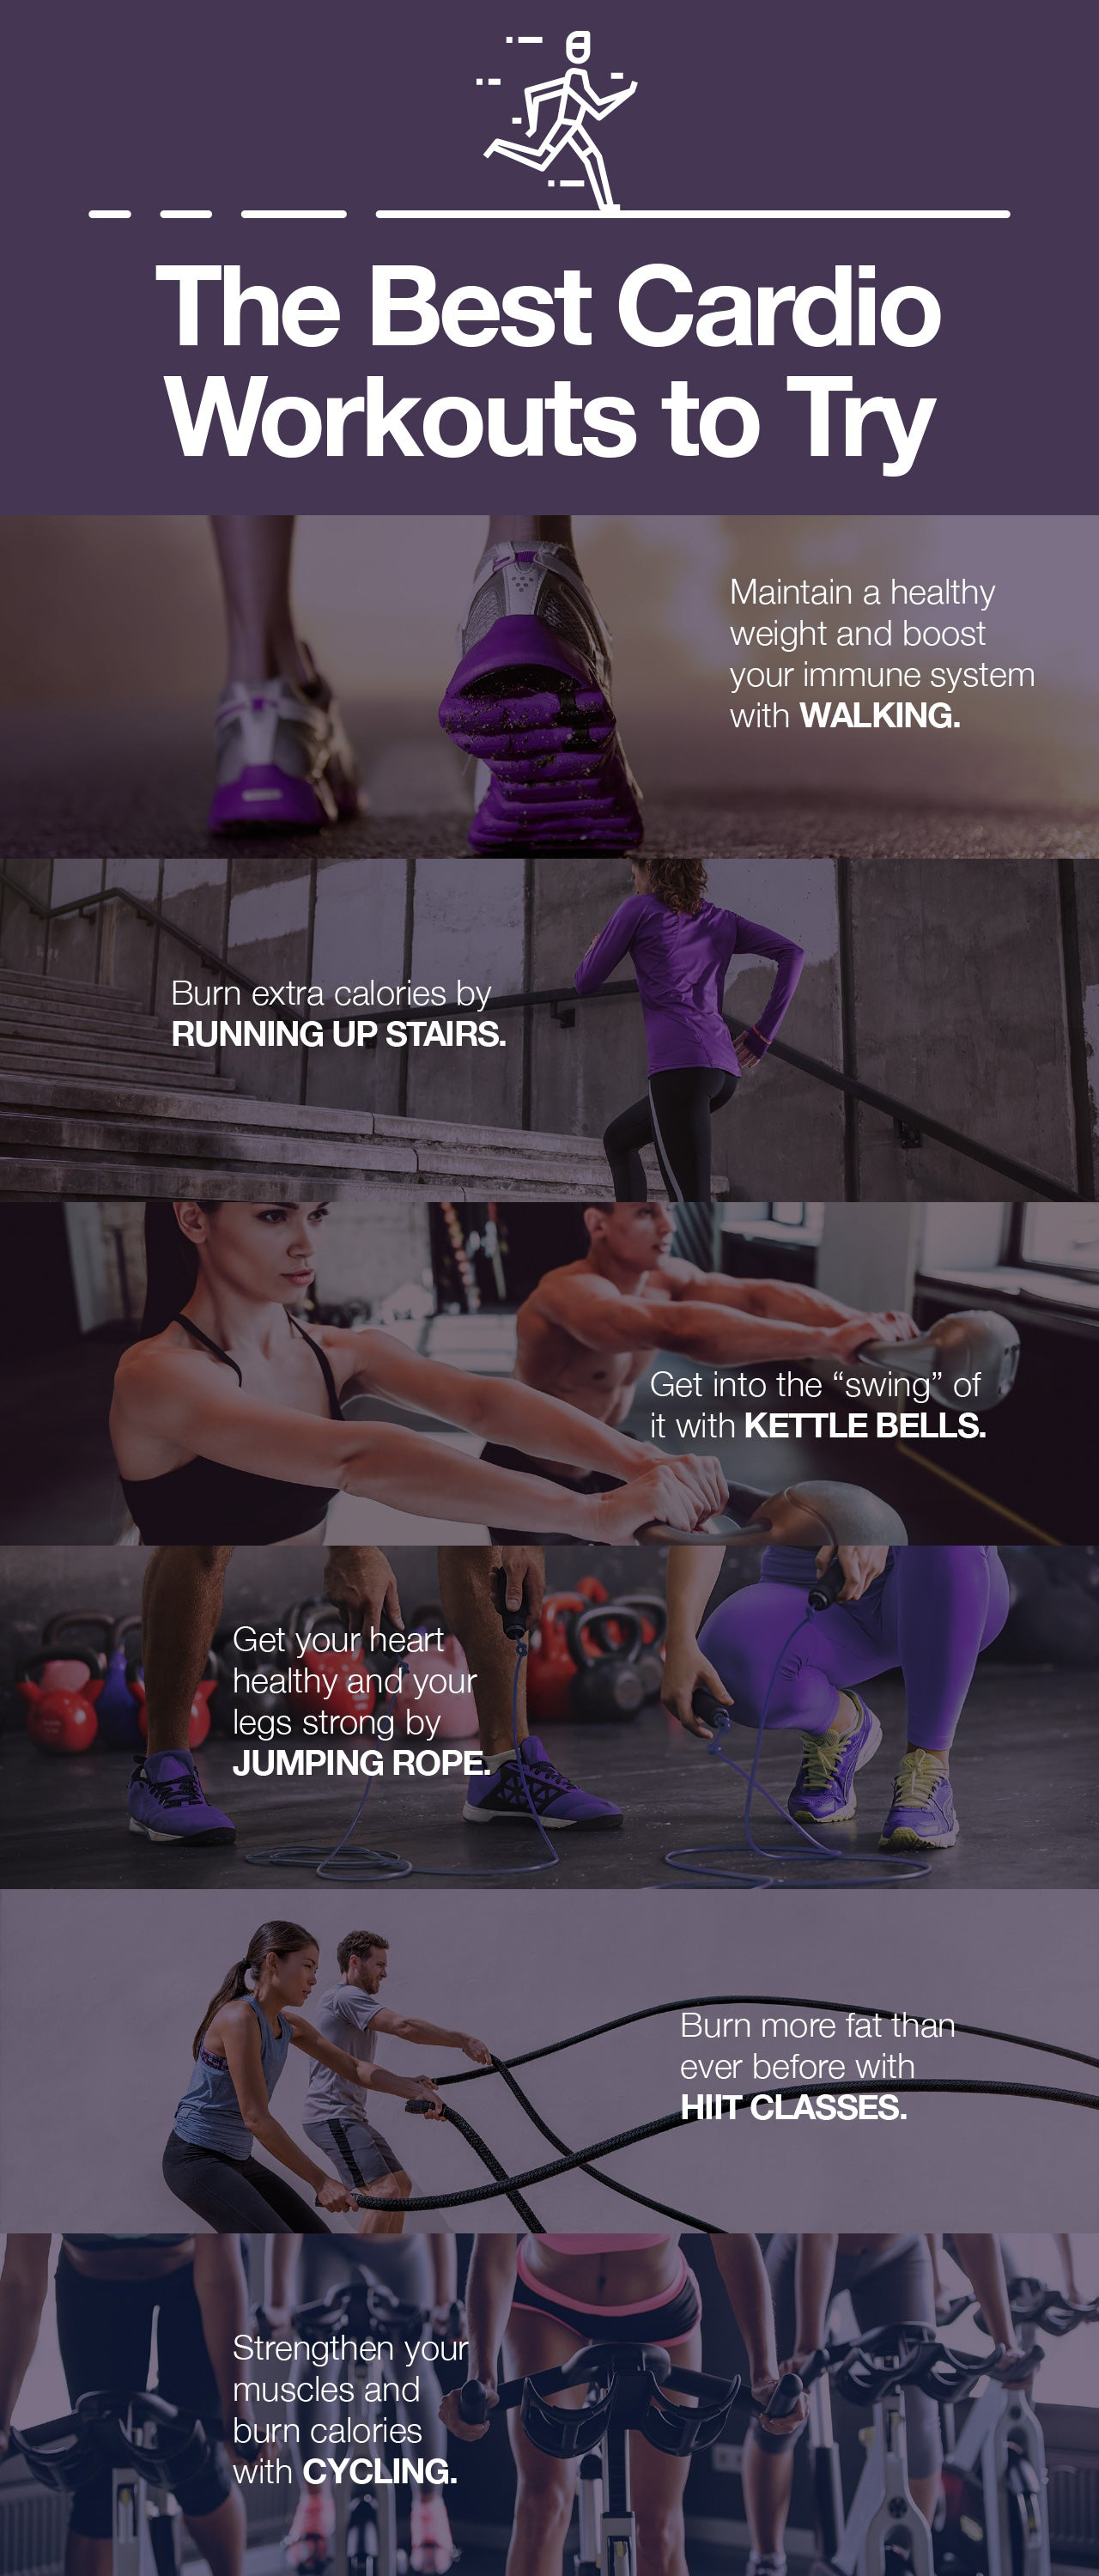 Best Cardio Workouts To Try